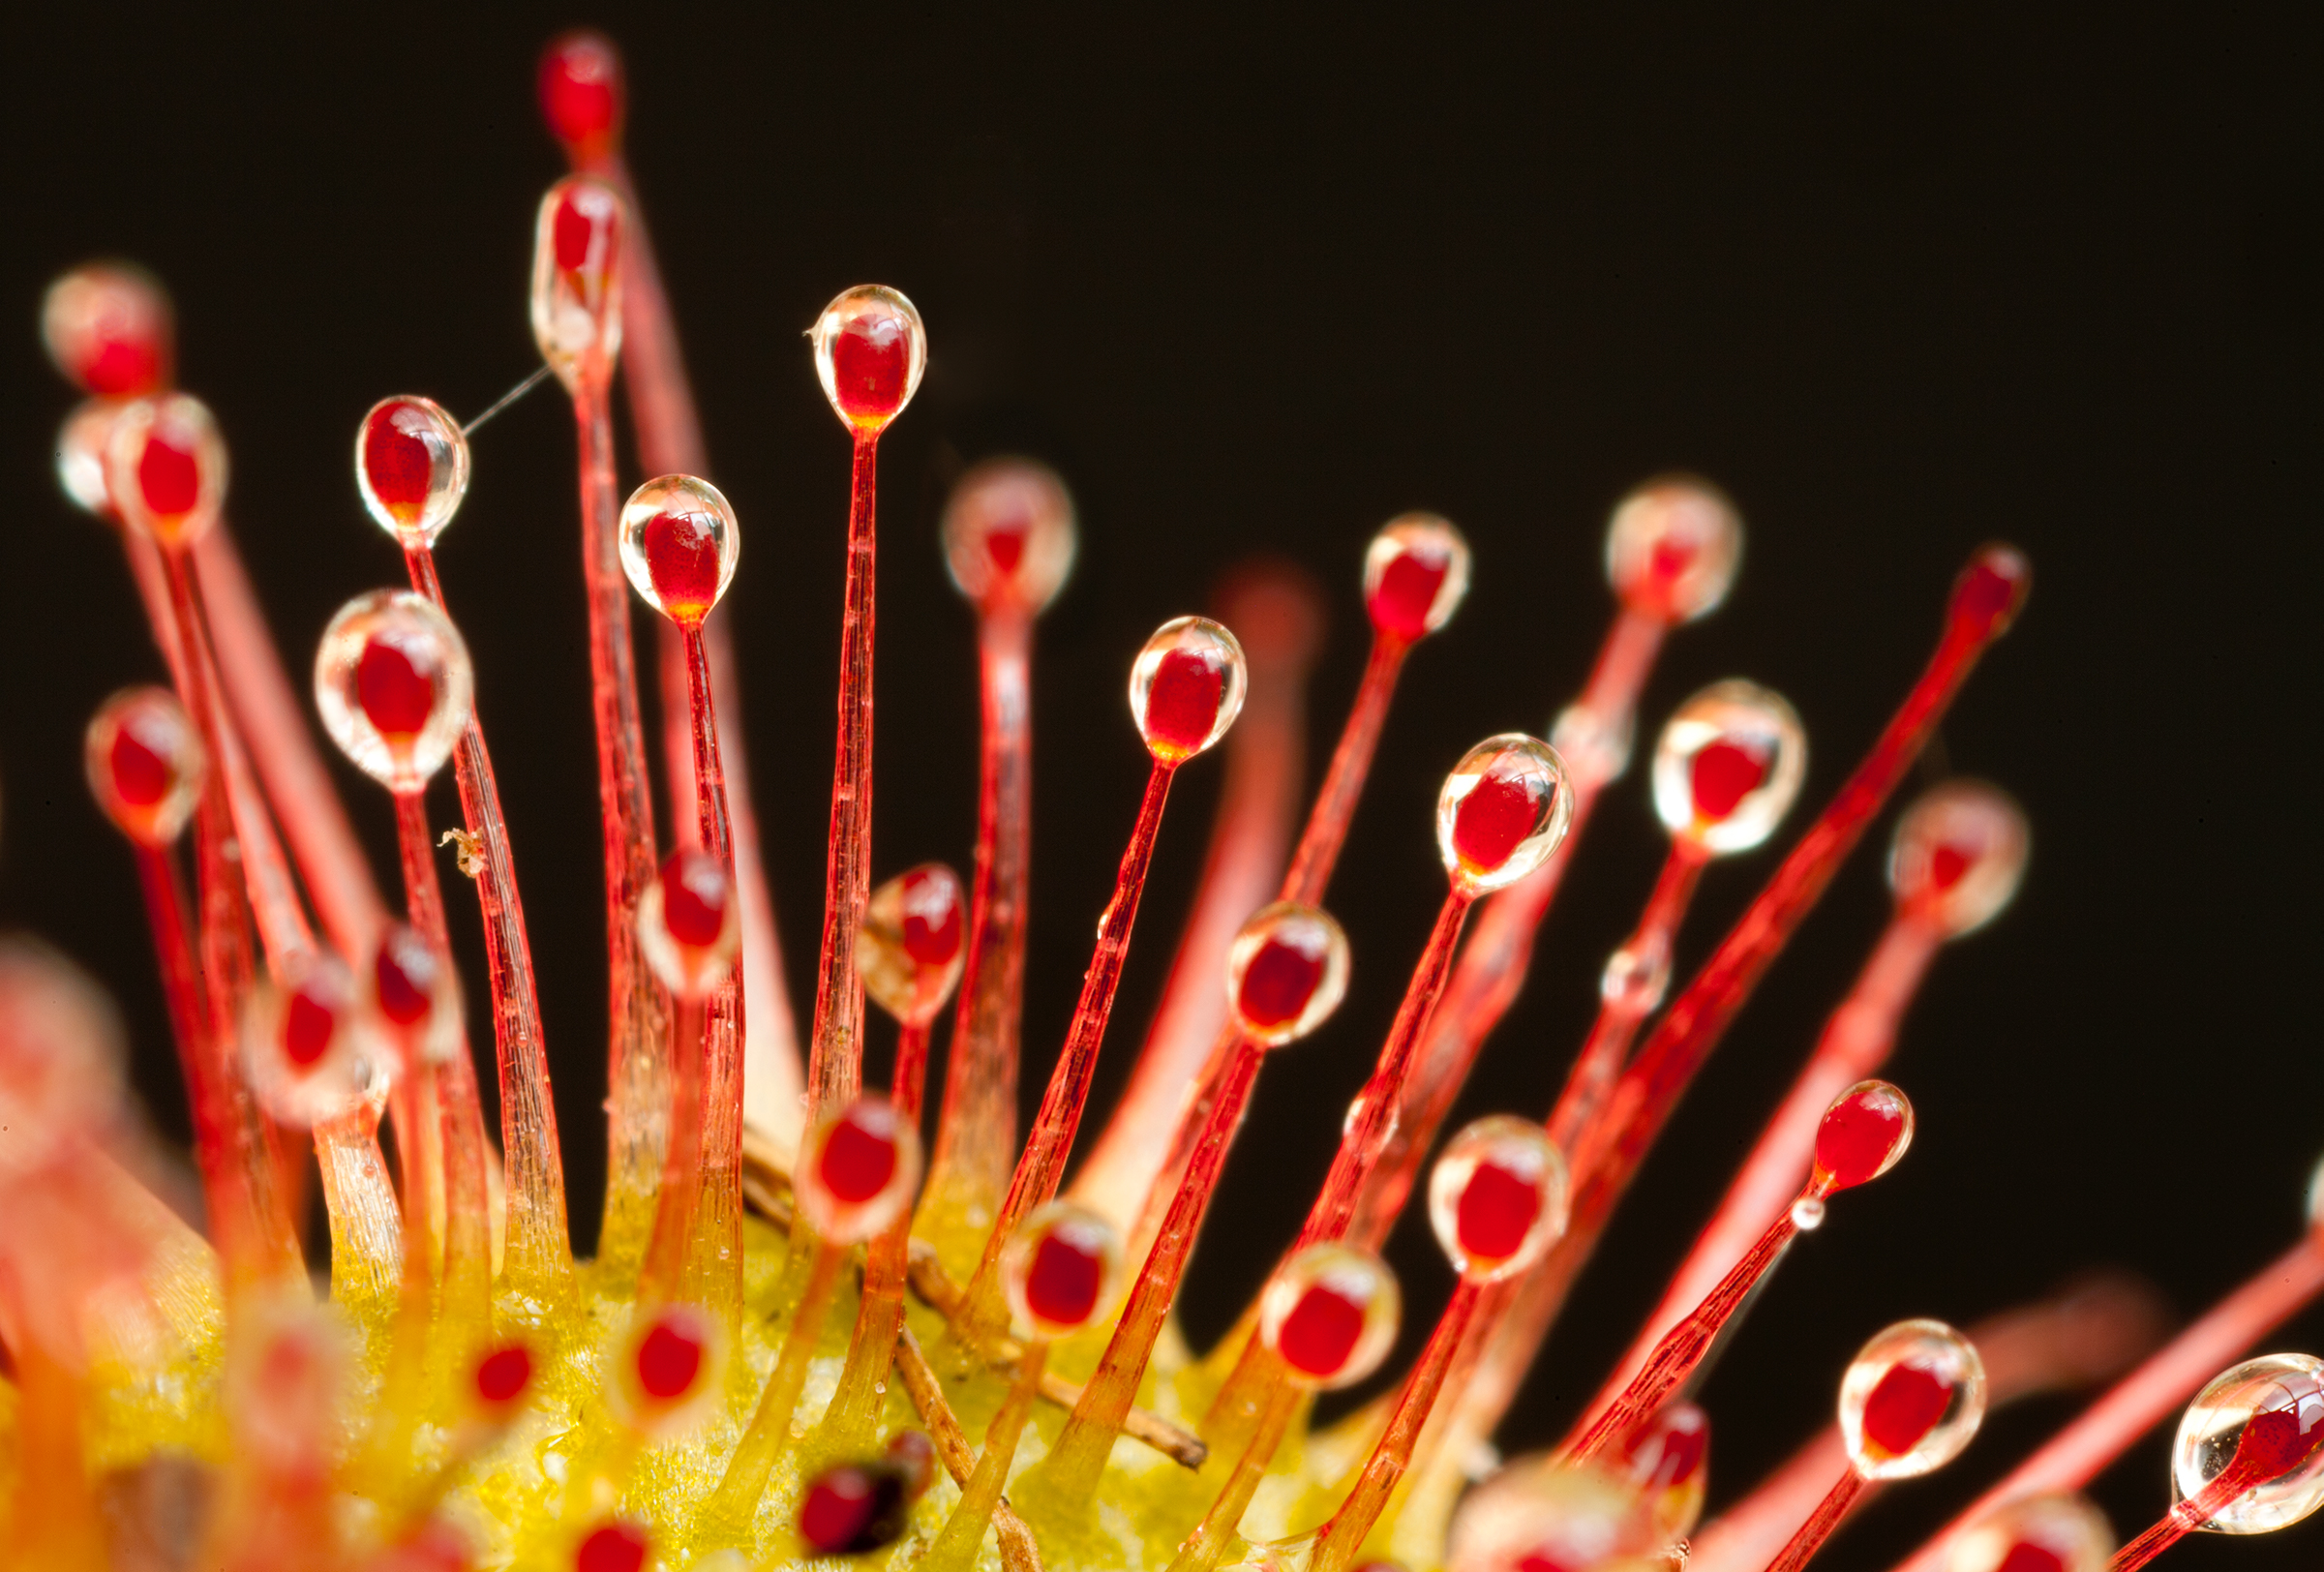 Sundews like this specimen photographed in Peak District National Park use sticky droplets to capture passing insects, a food source that provides nutrients the plants here can't obtain from the soil.